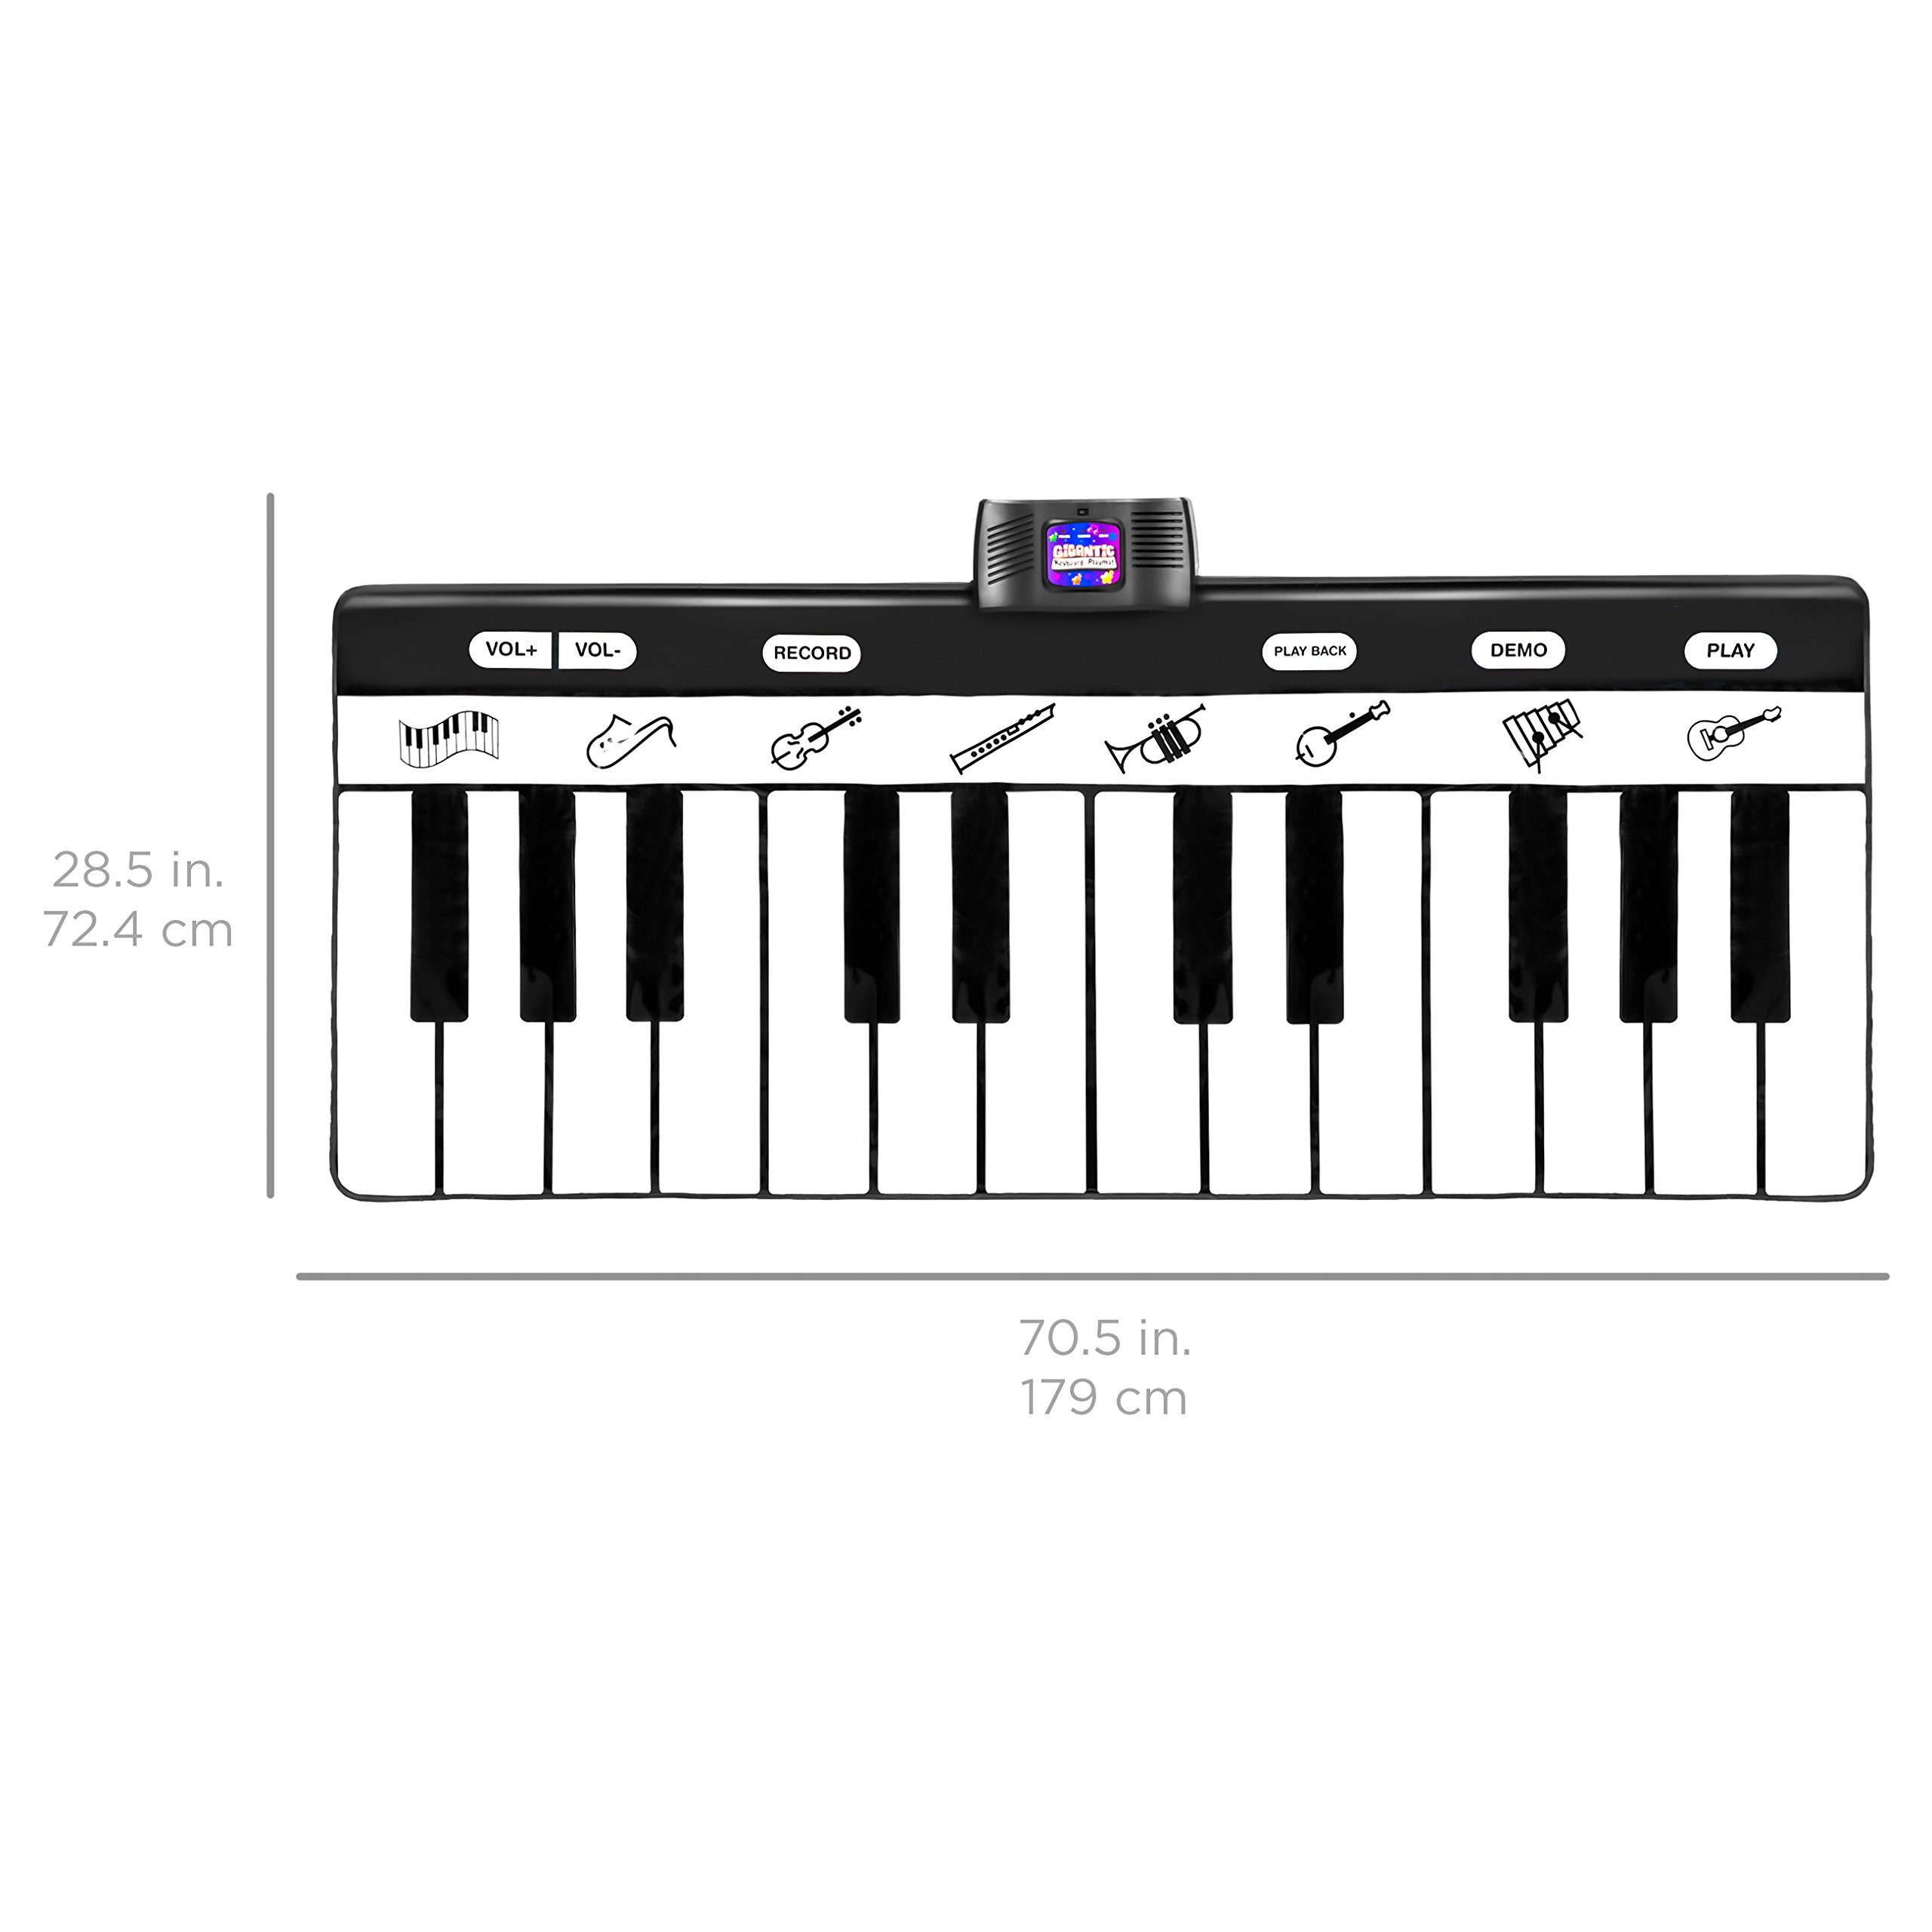 Best Choice Products 71-Inch Vinyl 24-Key Keyboard Playmat with 8 Settings and Recorder, Black/White by Best Choice Products (Image #6)